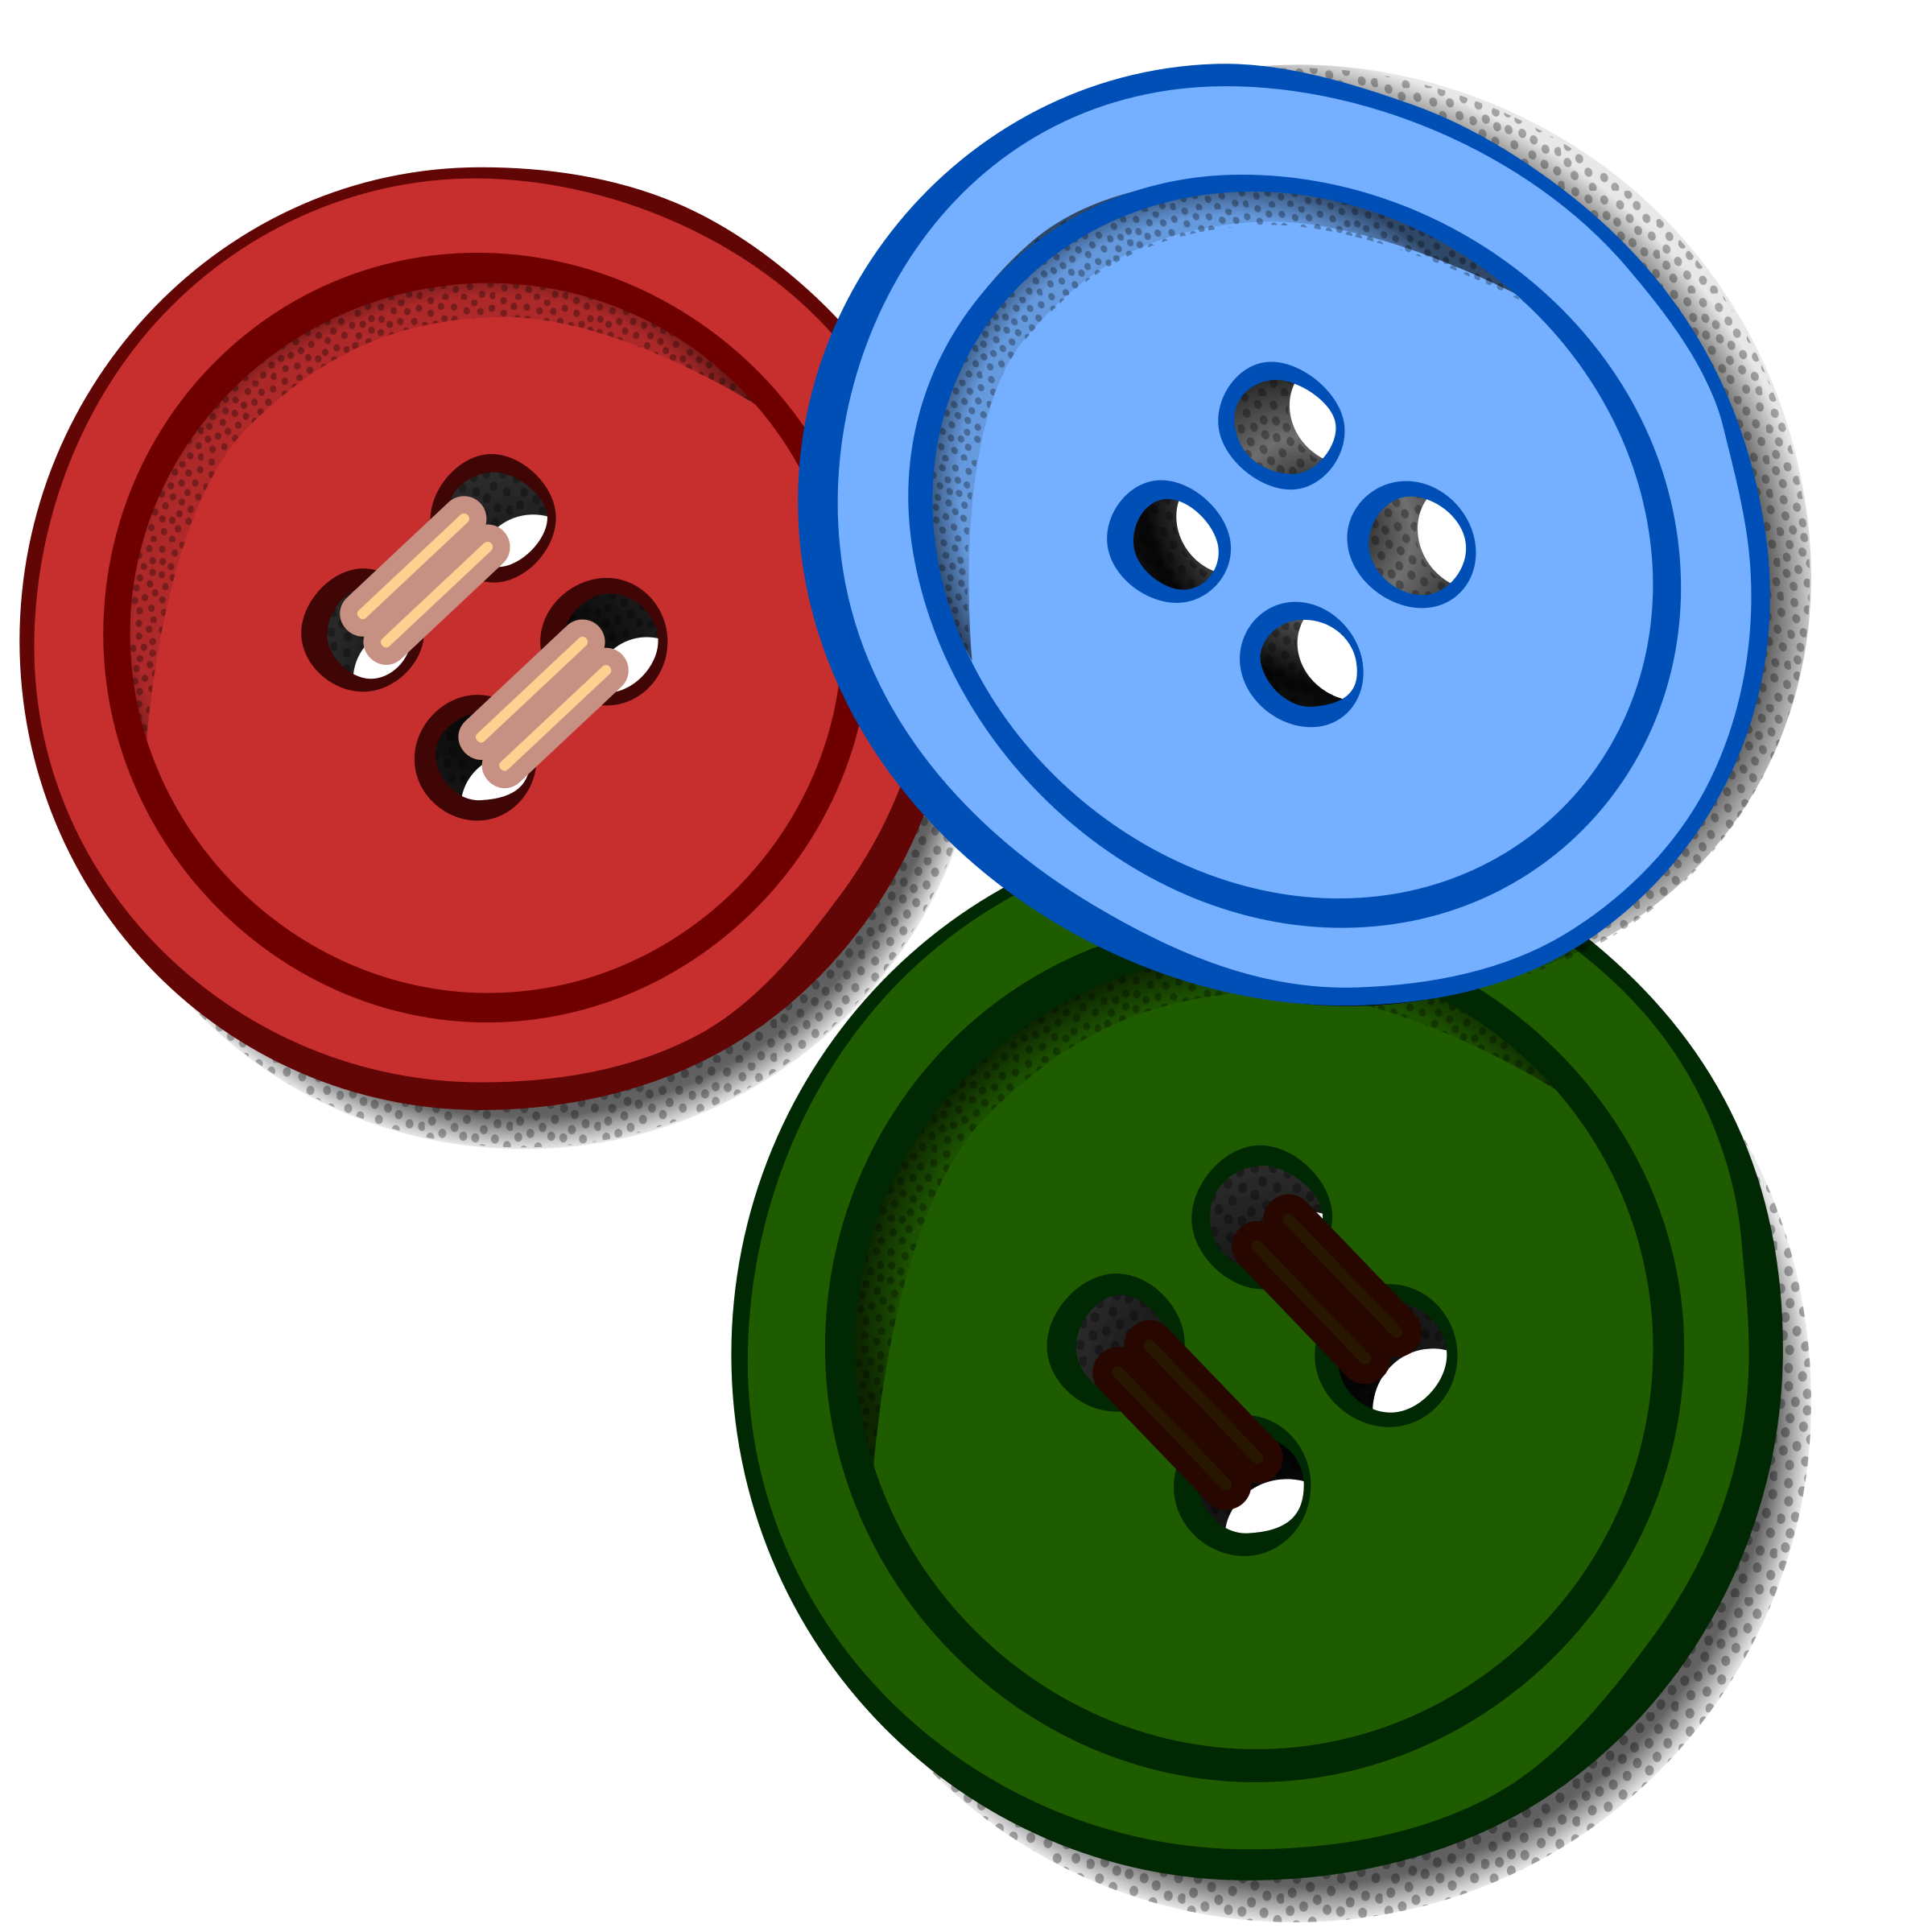 Button clipart img. Buttons coloured icons png